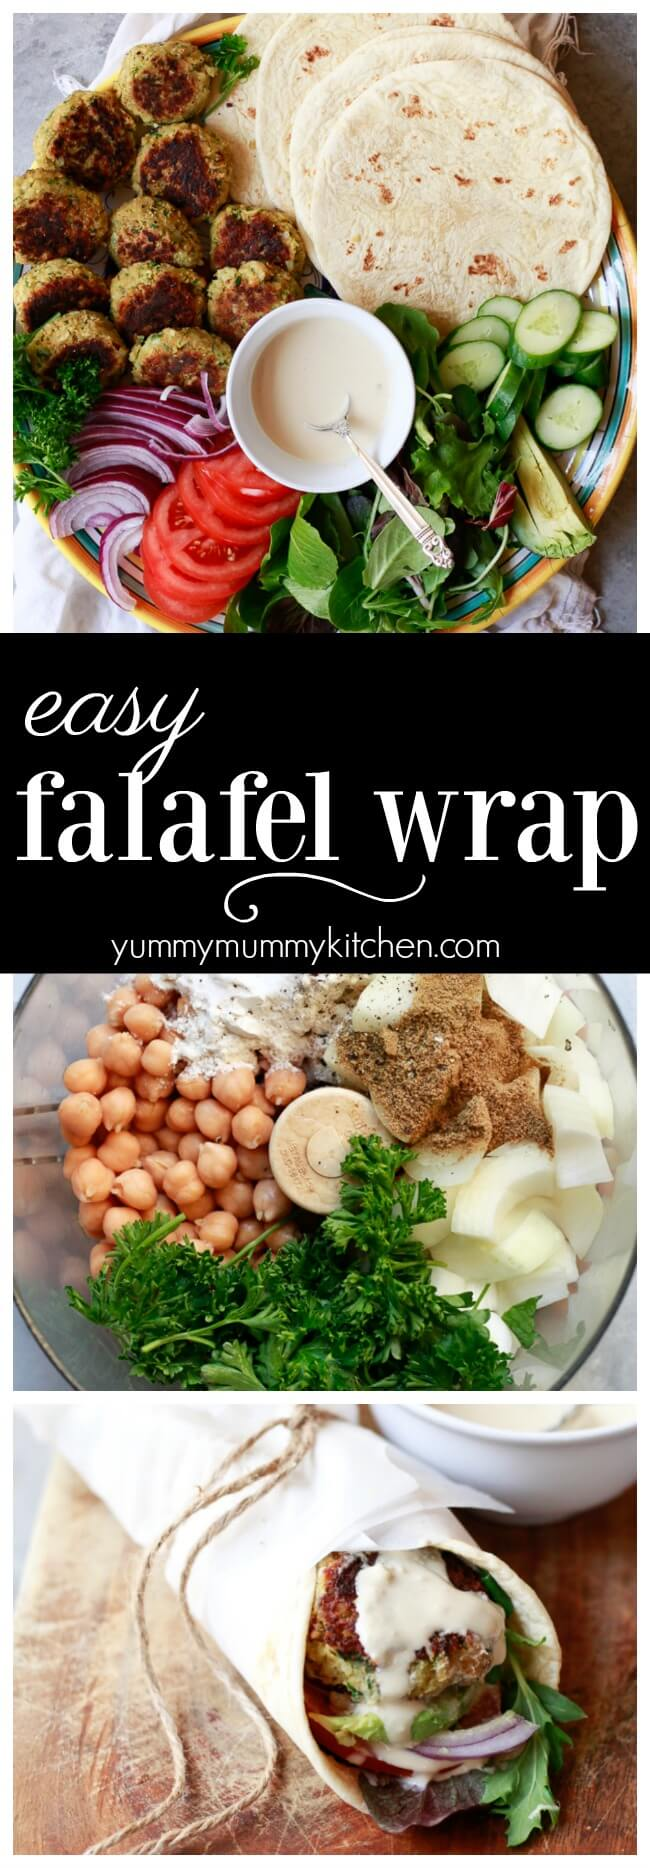 Easy falafel wrap recipe with tahini sauce, veggies, flatbread, and easy falafel made with canned chickpeas. Falafel wraps are a delicious vegetarian and vegan lunch or dinner idea.